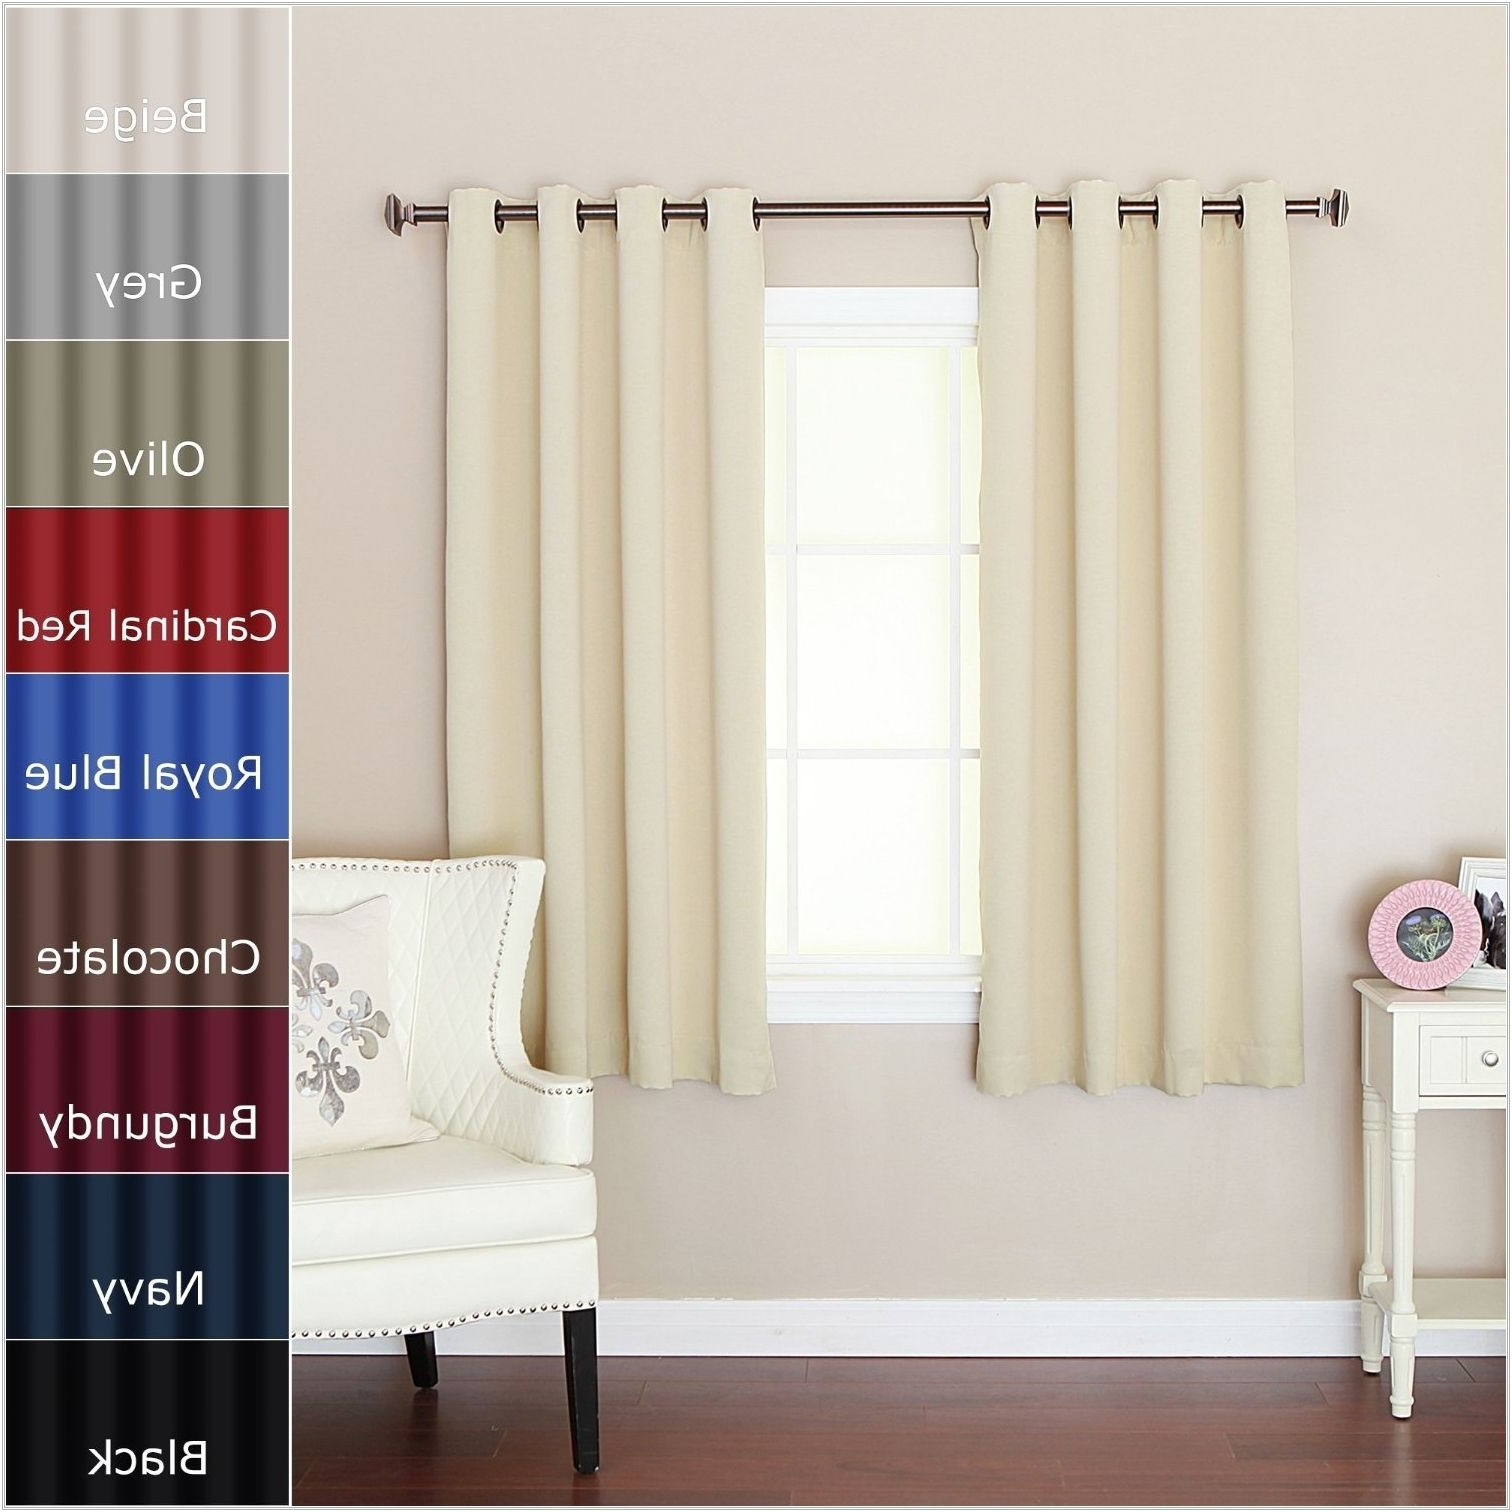 Trendy Blackout Curtains For Short Wide Windows (View 15 of 20)